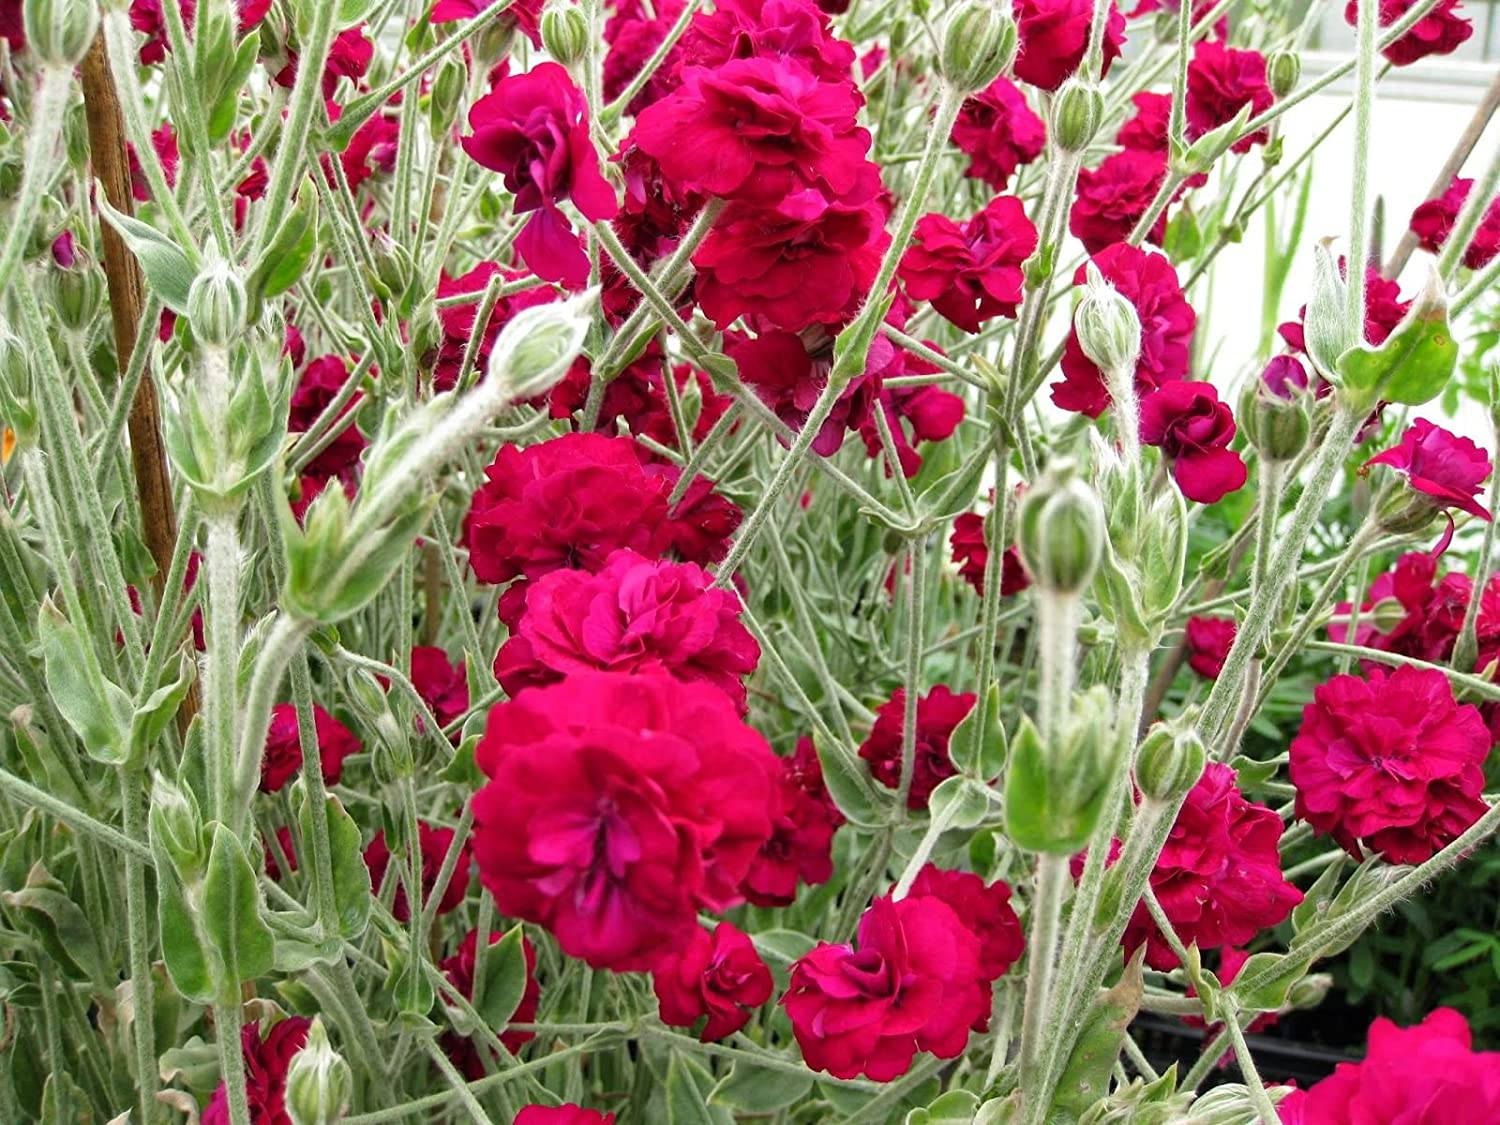 Astonishing Lychnis Coronaria Gardeners World Perennial Plant In A 17Cm Pot Cottage Garden Fave Download Free Architecture Designs Ponolprimenicaraguapropertycom